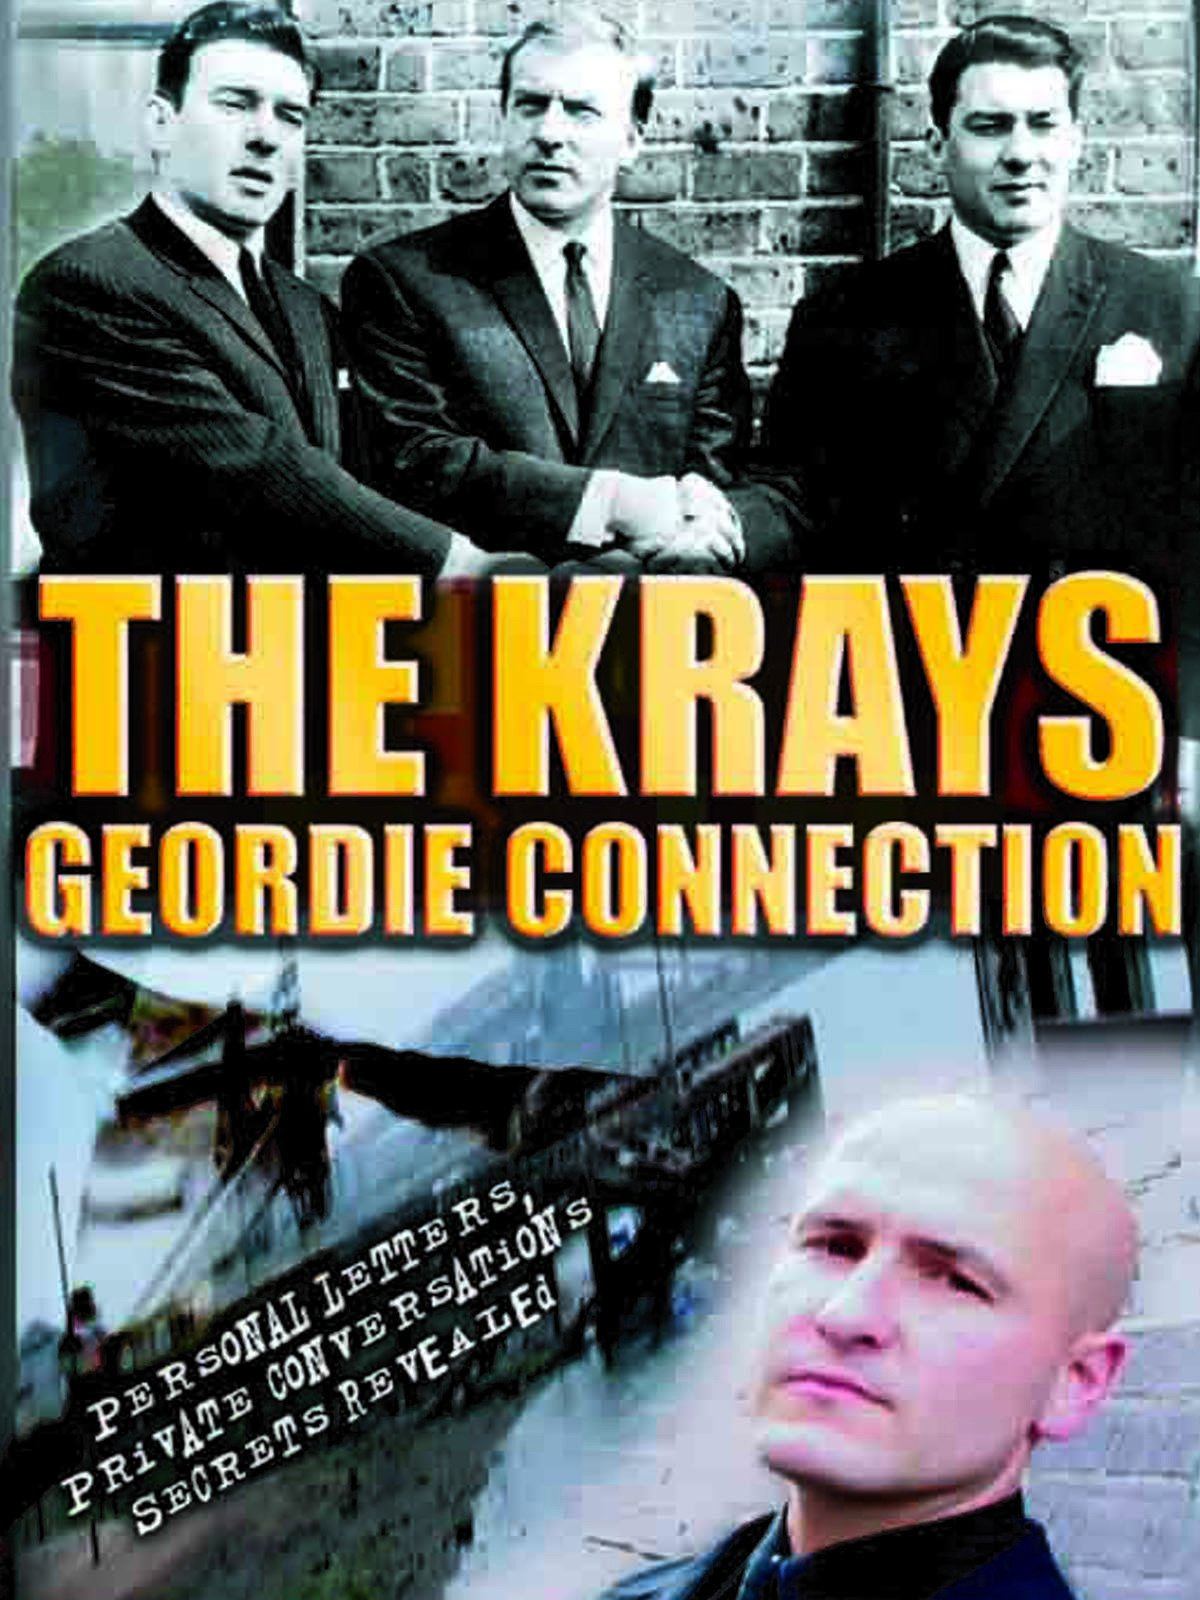 The Kray's